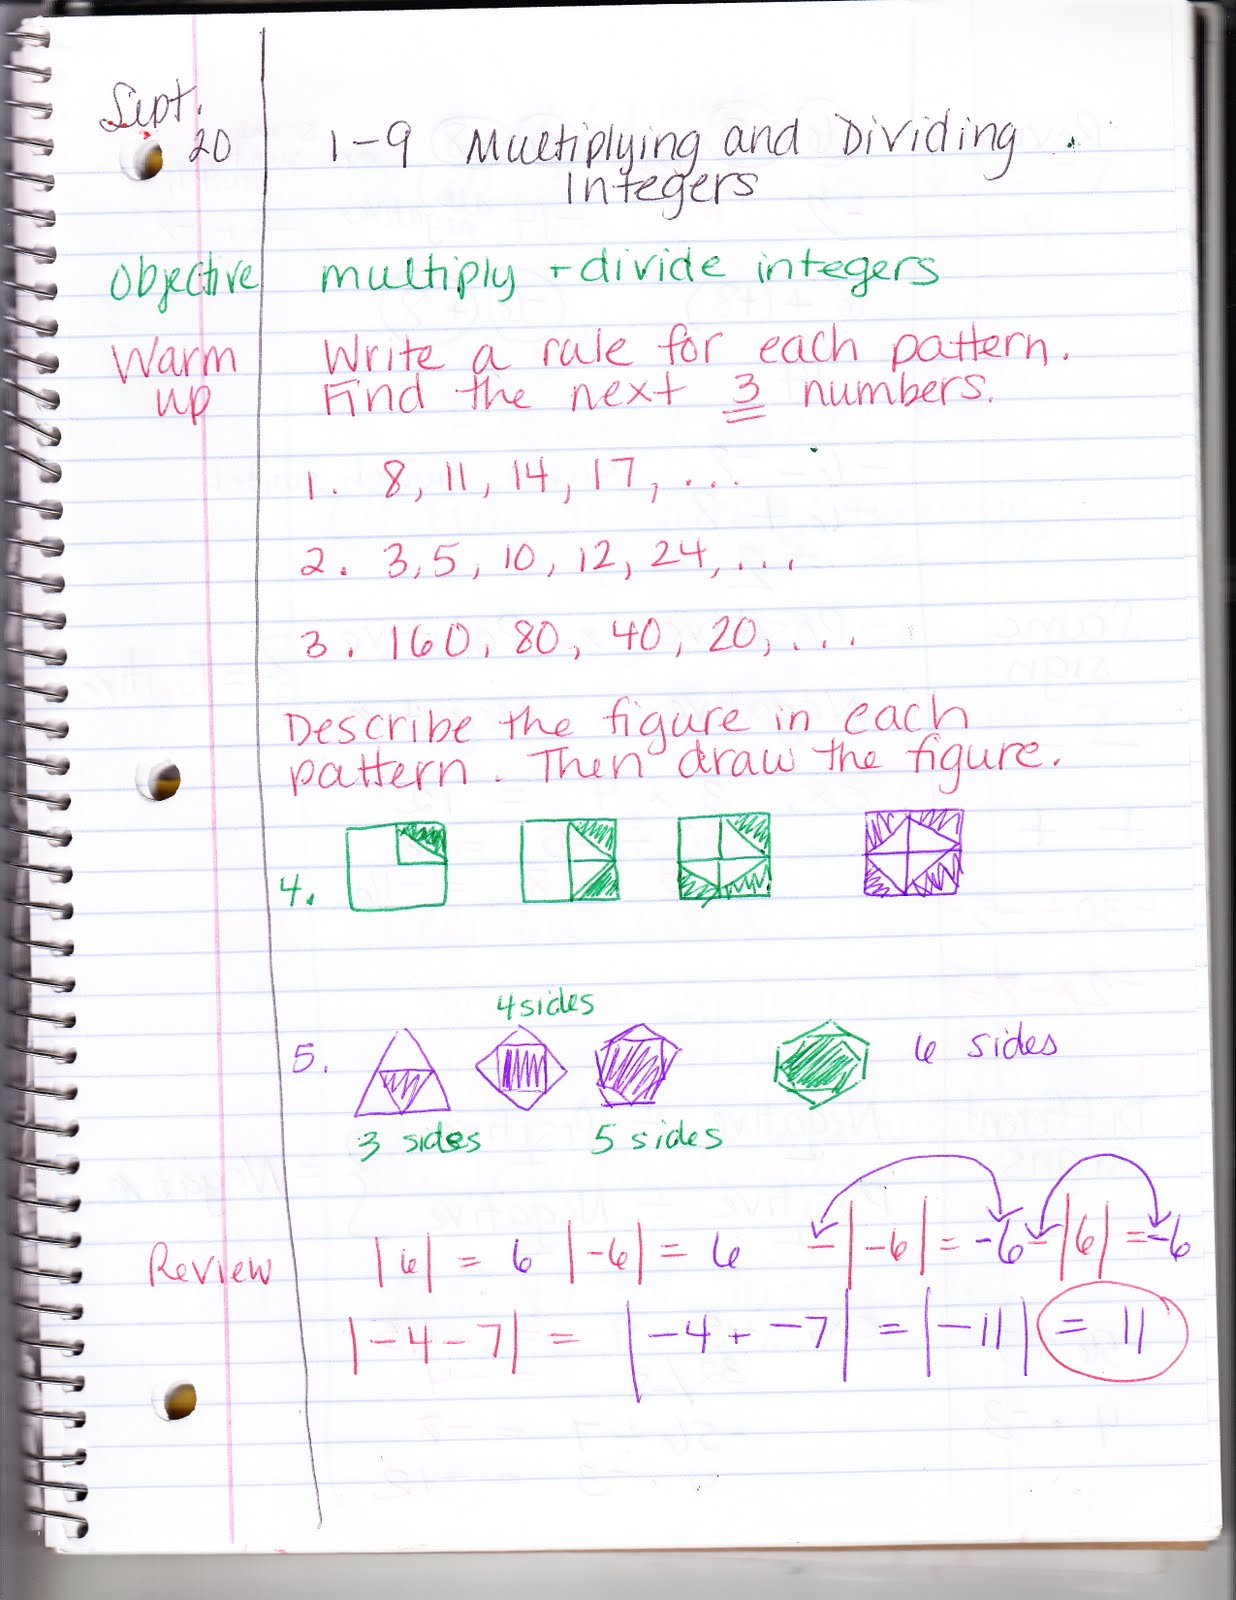 Ms Jean S Classroom Blog 1 9 Multiplying And Dividing